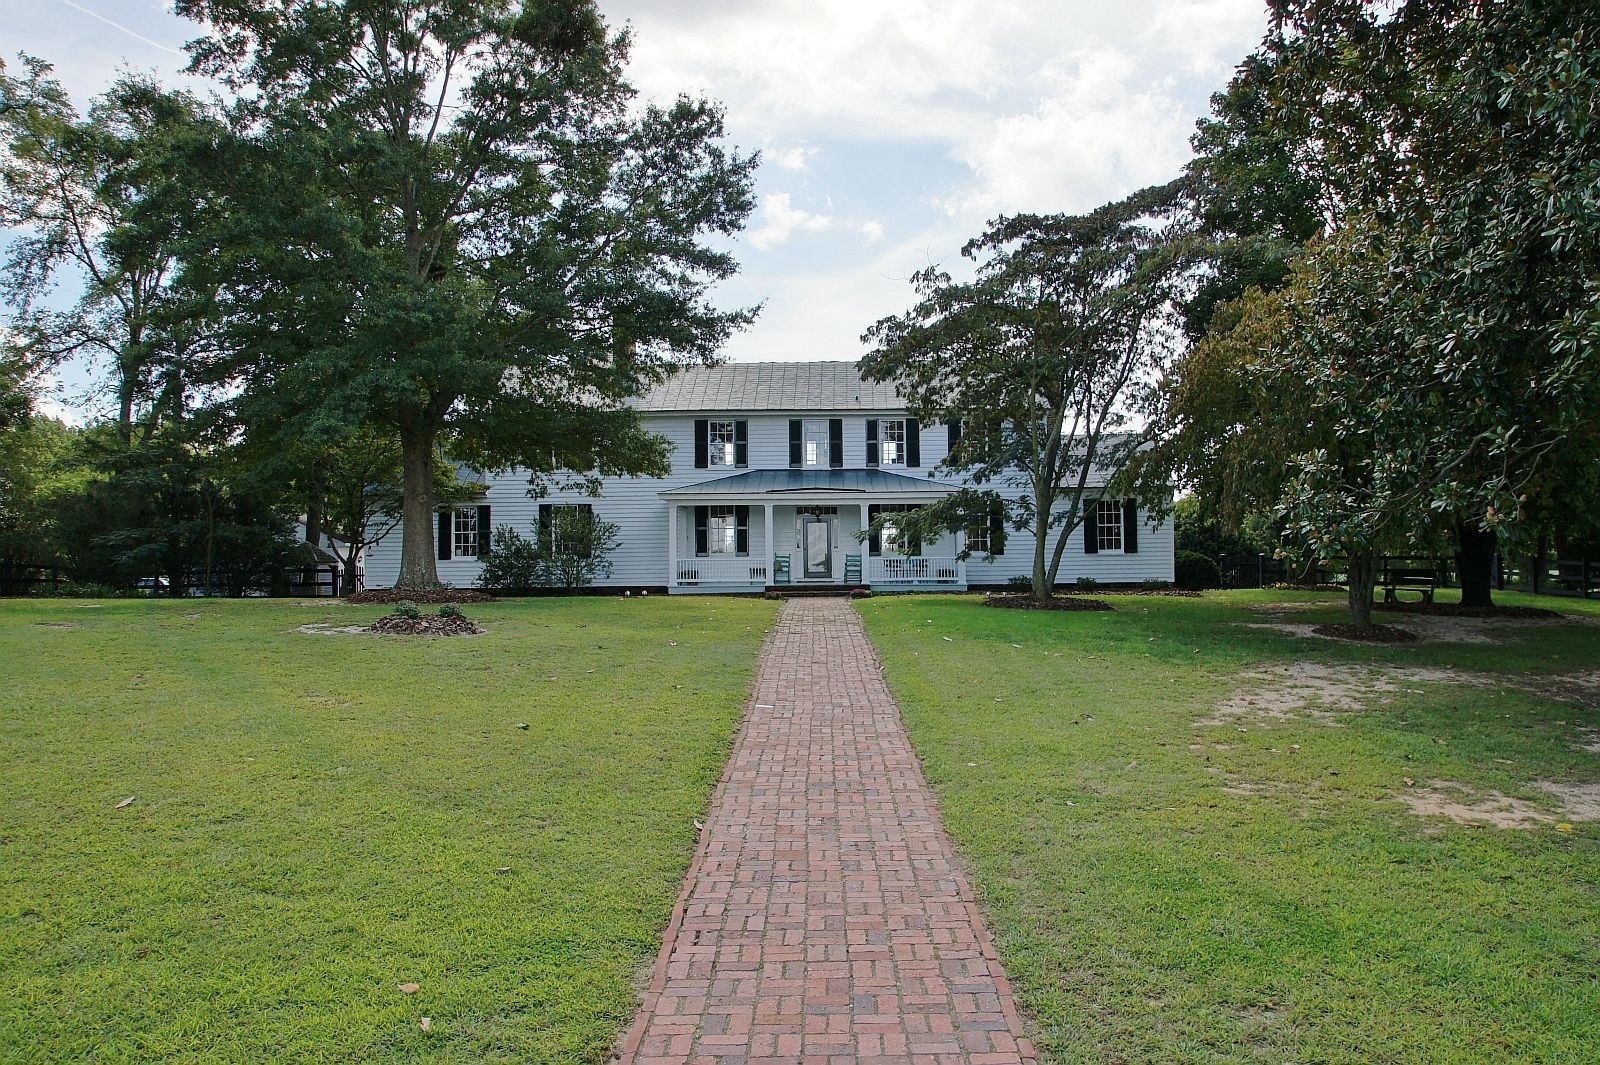 Green Mount, Circa 1775, is being offered for the first time since 1839. Careful restorations have kept Green Mount true to its period while offering a modern standard of living. This is not my listing but is a lovely property.